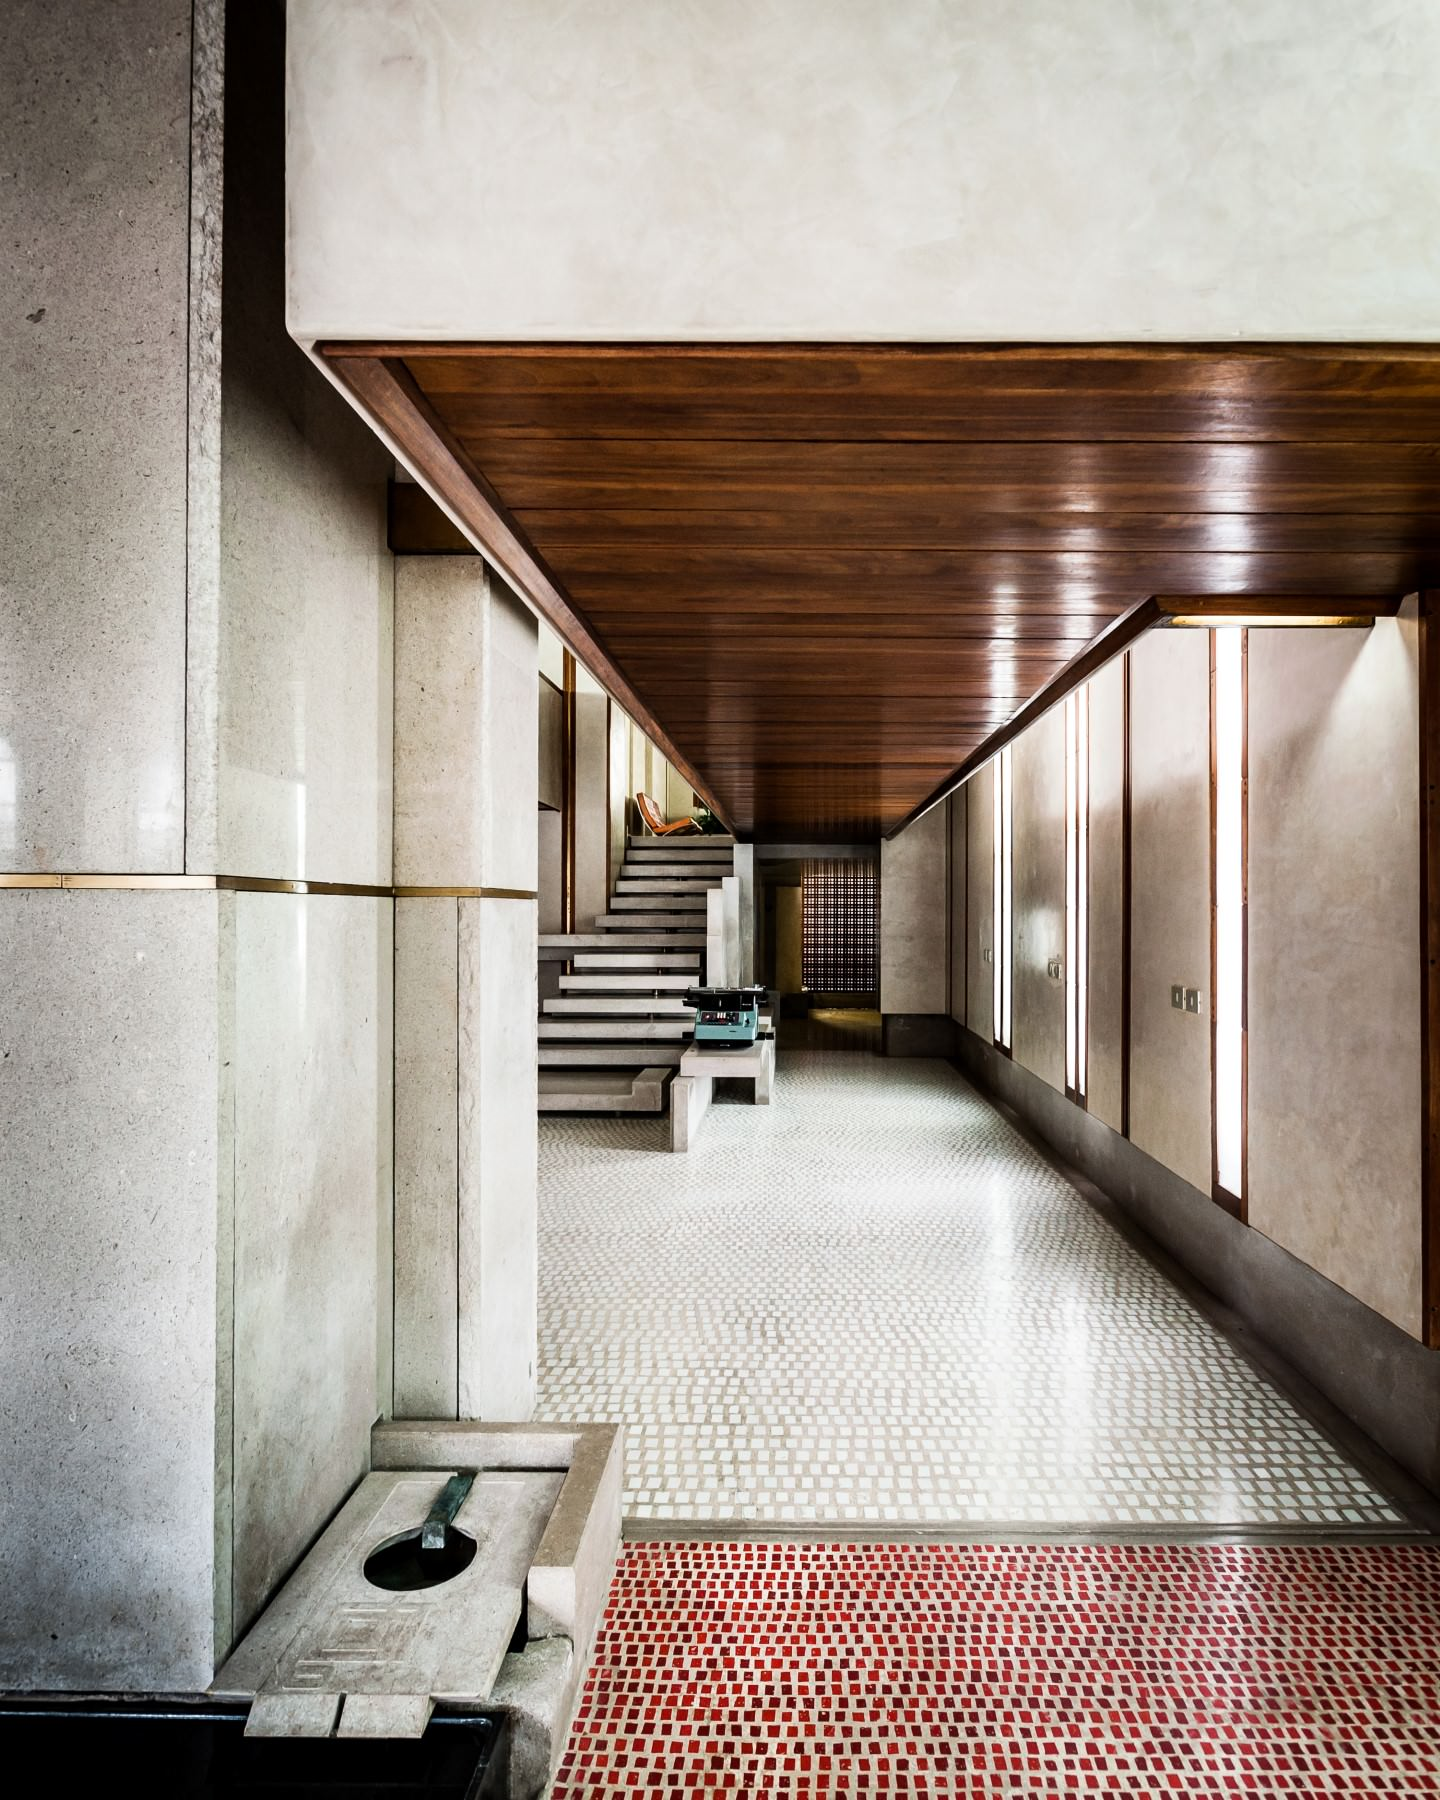 Carlo Scarpa An Architect We Love Stewart Schafer